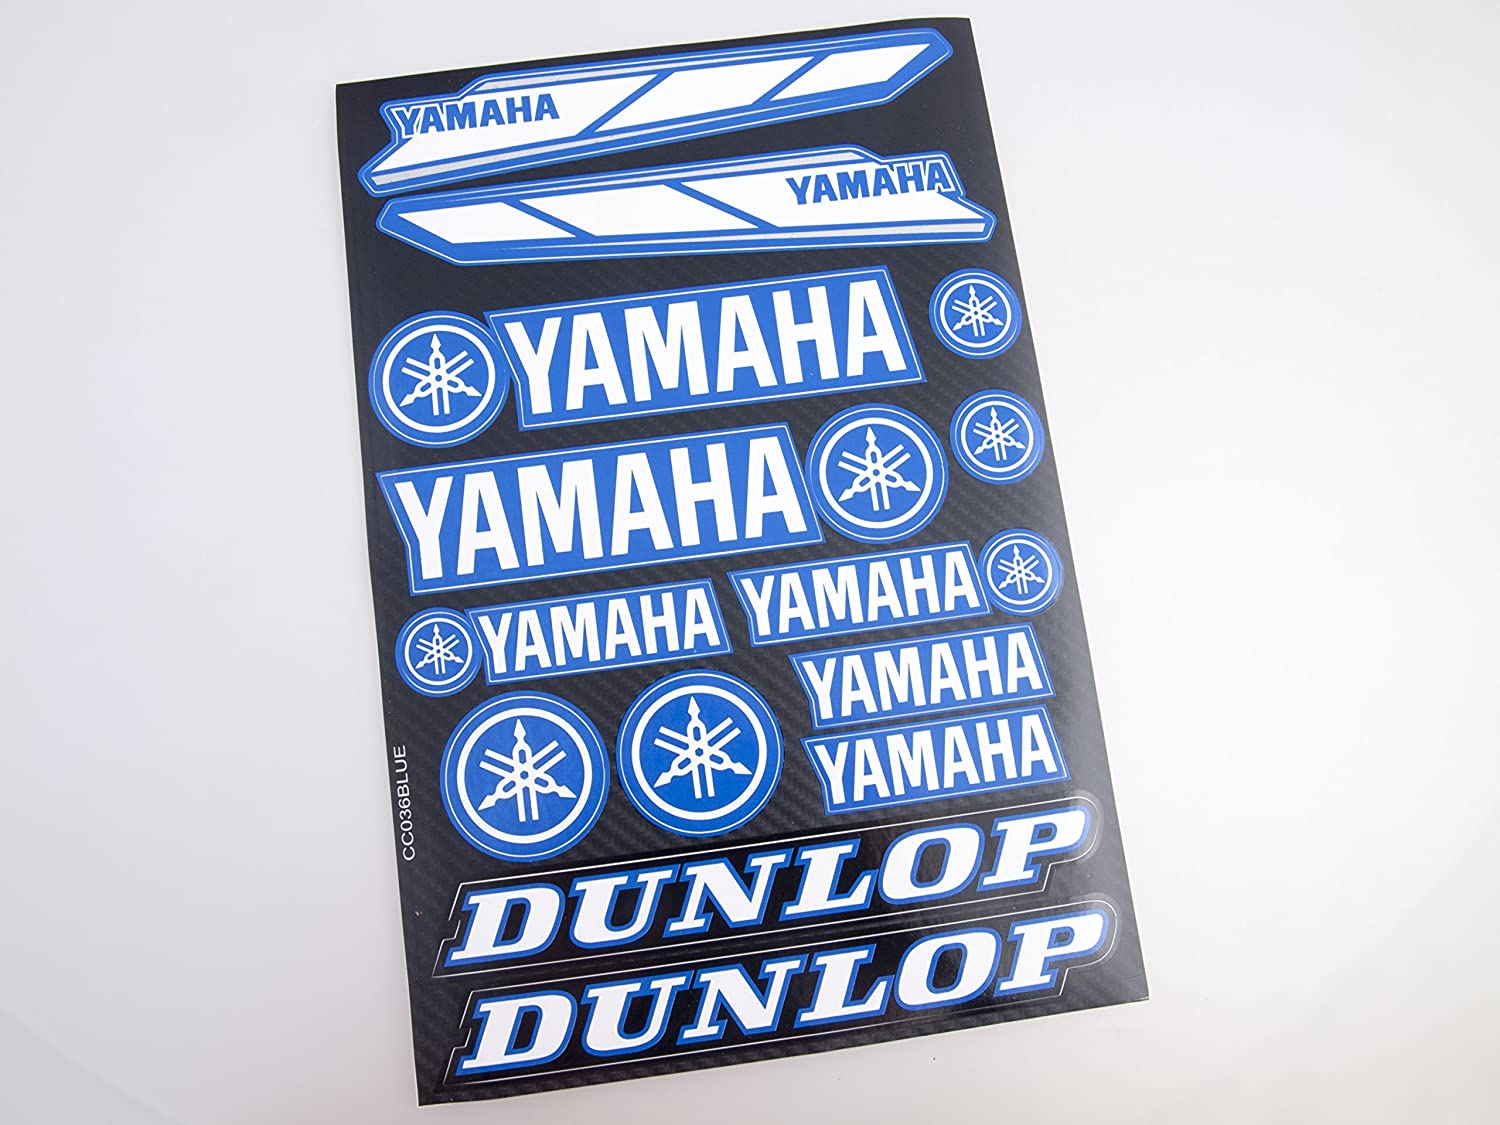 Yamaha Stickers Decals 30x20cm vinyl with extra protection on top (Blue) Life Decor CC019